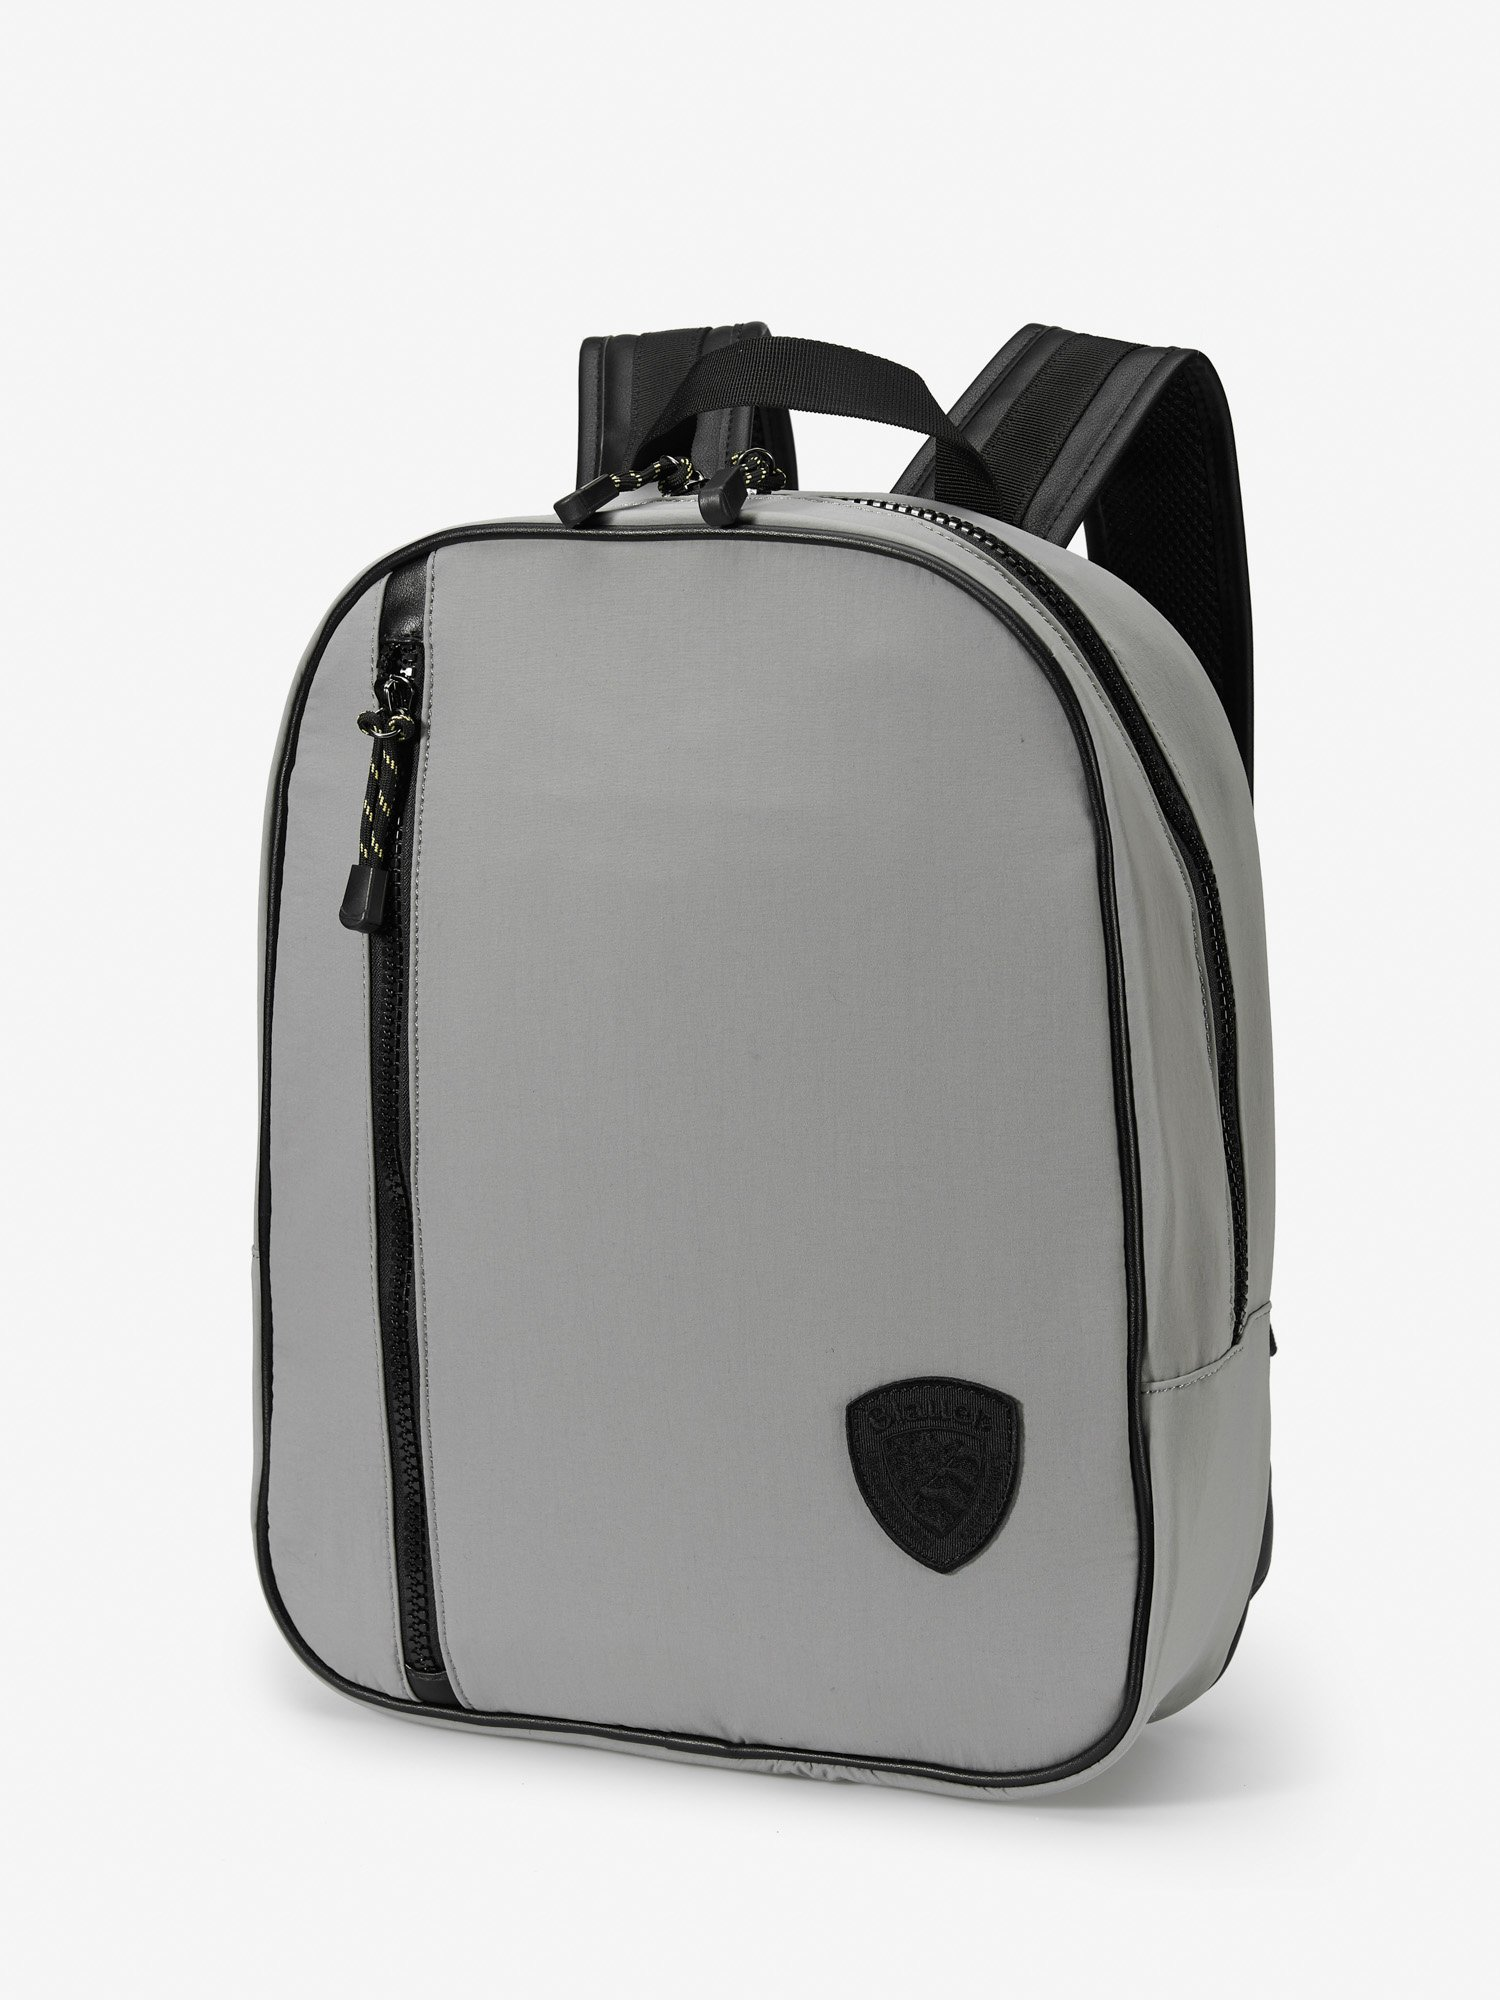 Blauer - SPECIAL BACKPACK - Grey Metal - Blauer